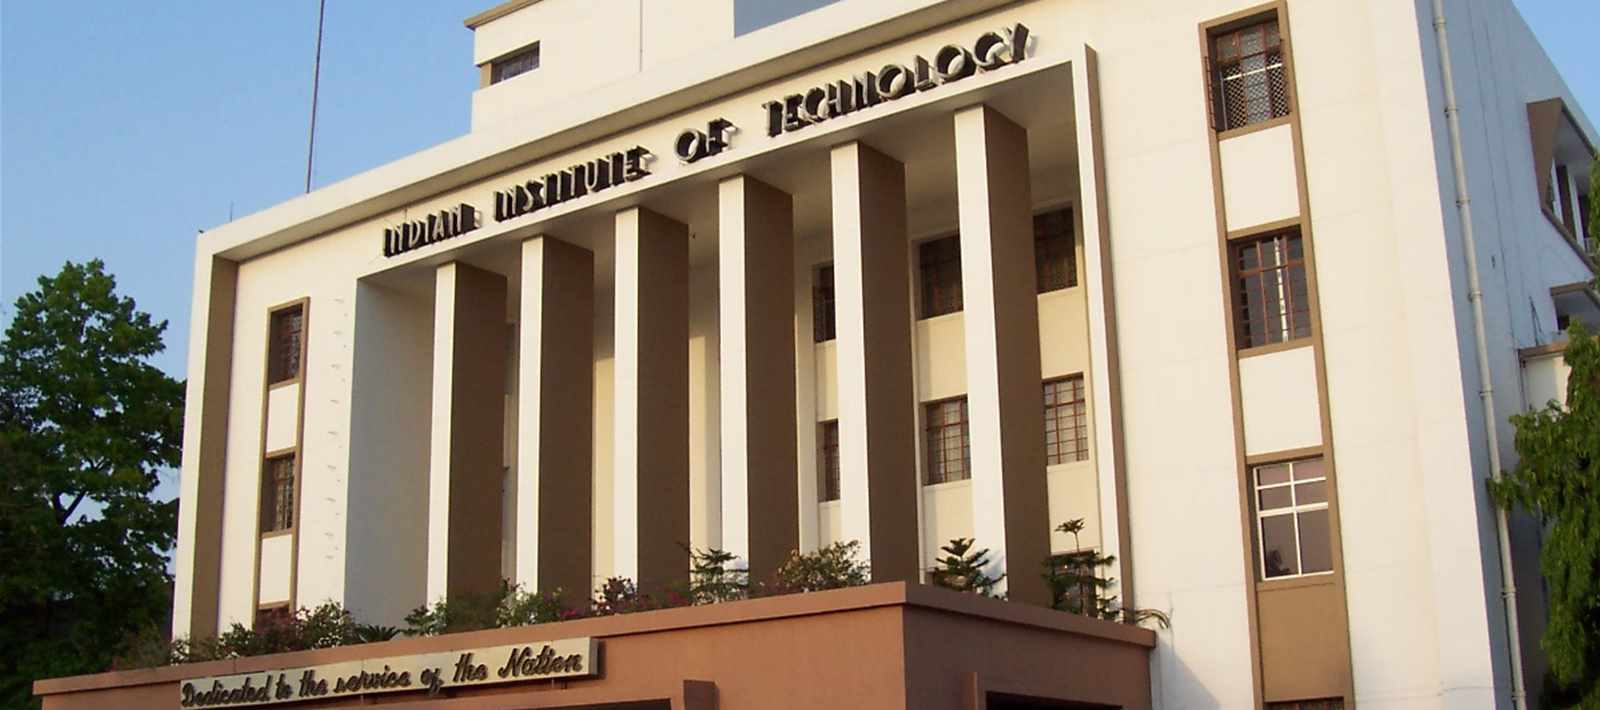 The Indian Institute of Technology in Bombay